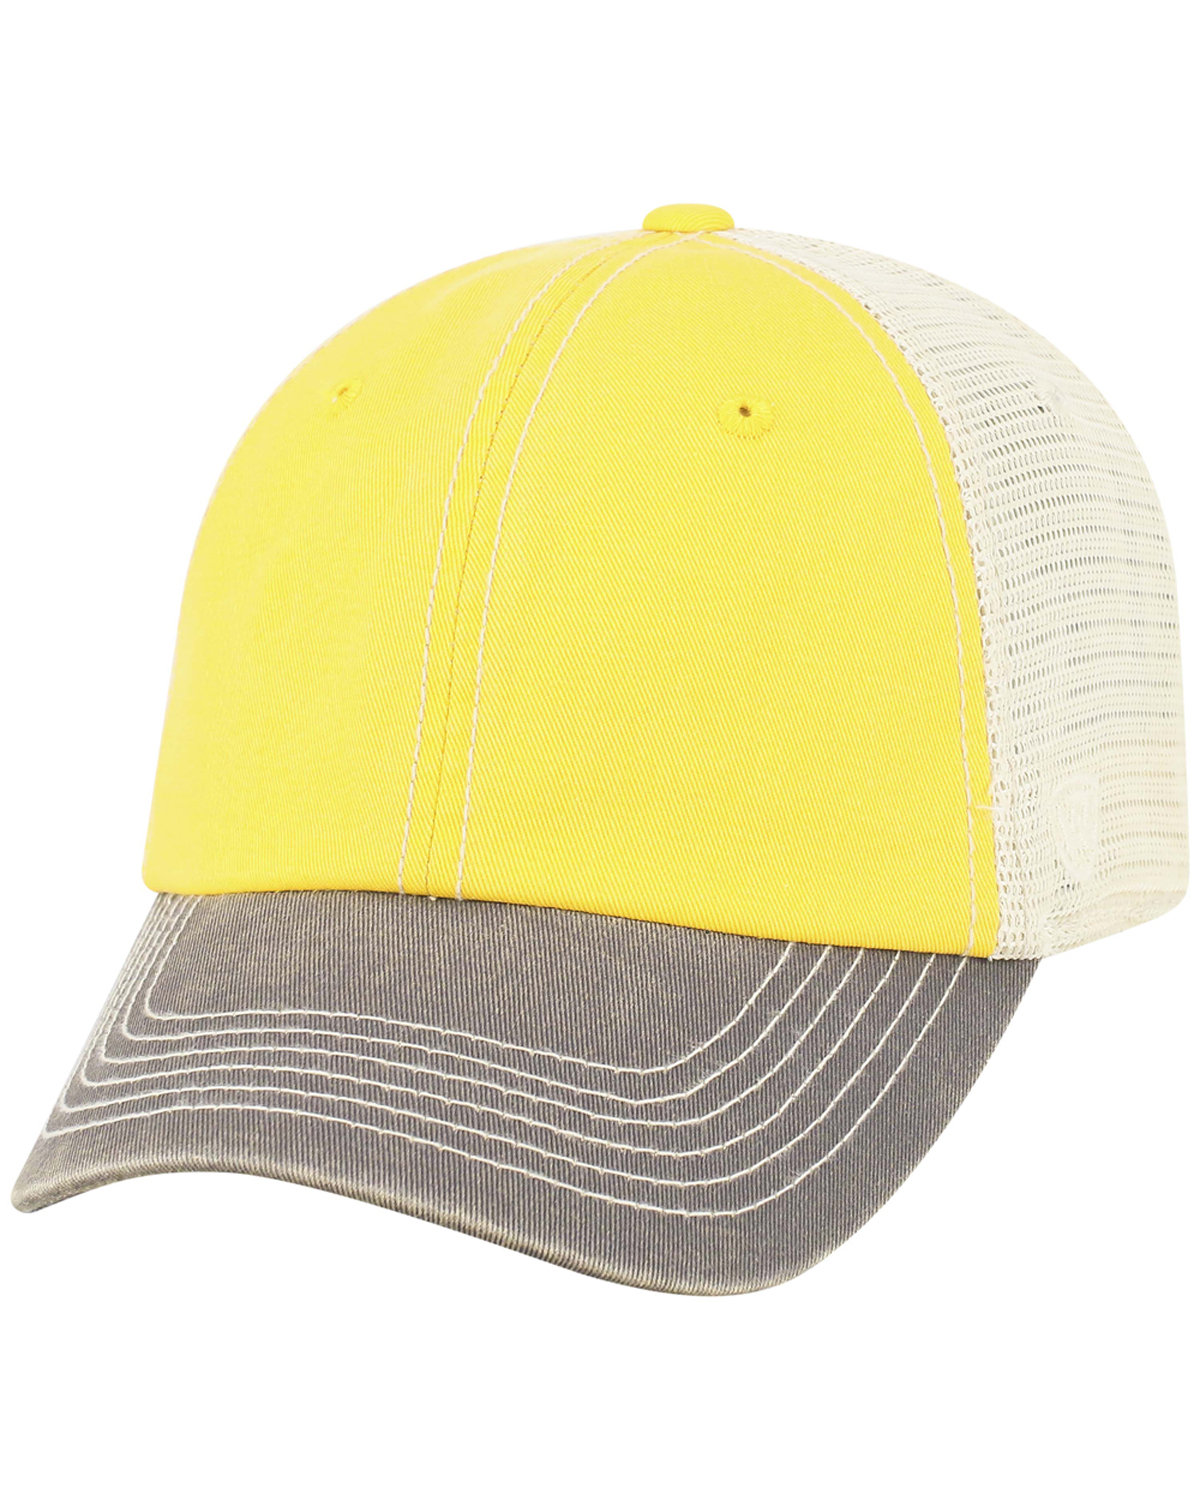 Top Of The World Adult Offroad Cap GOLD